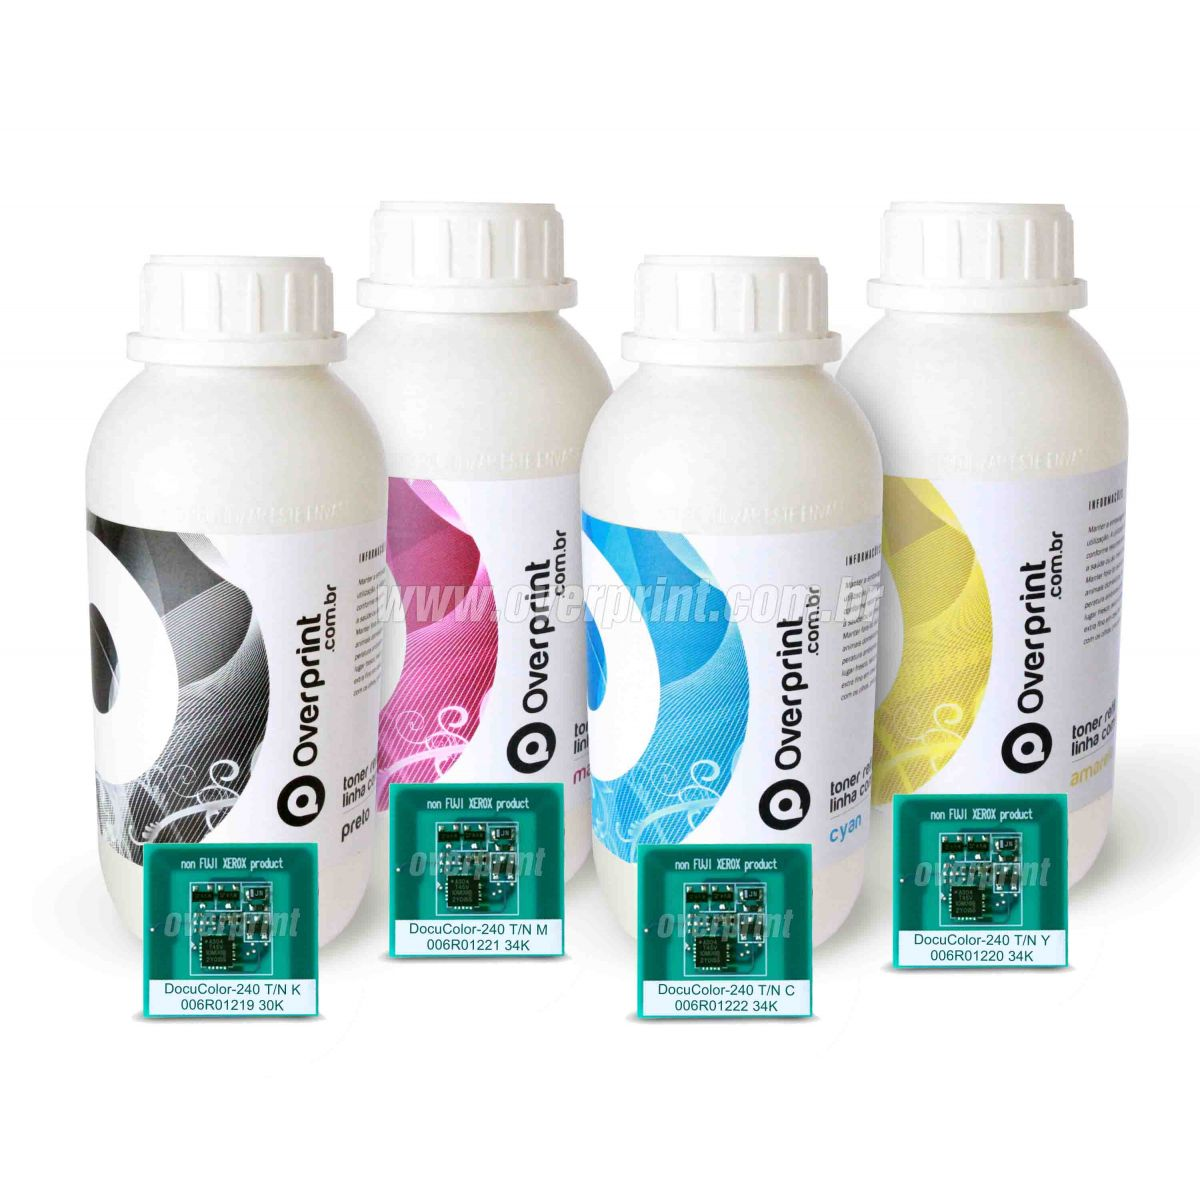 Kit Refil de Toner 4 cores + 4 Chips Xerox Docucolor 240/242/250/252/260 - Overprint